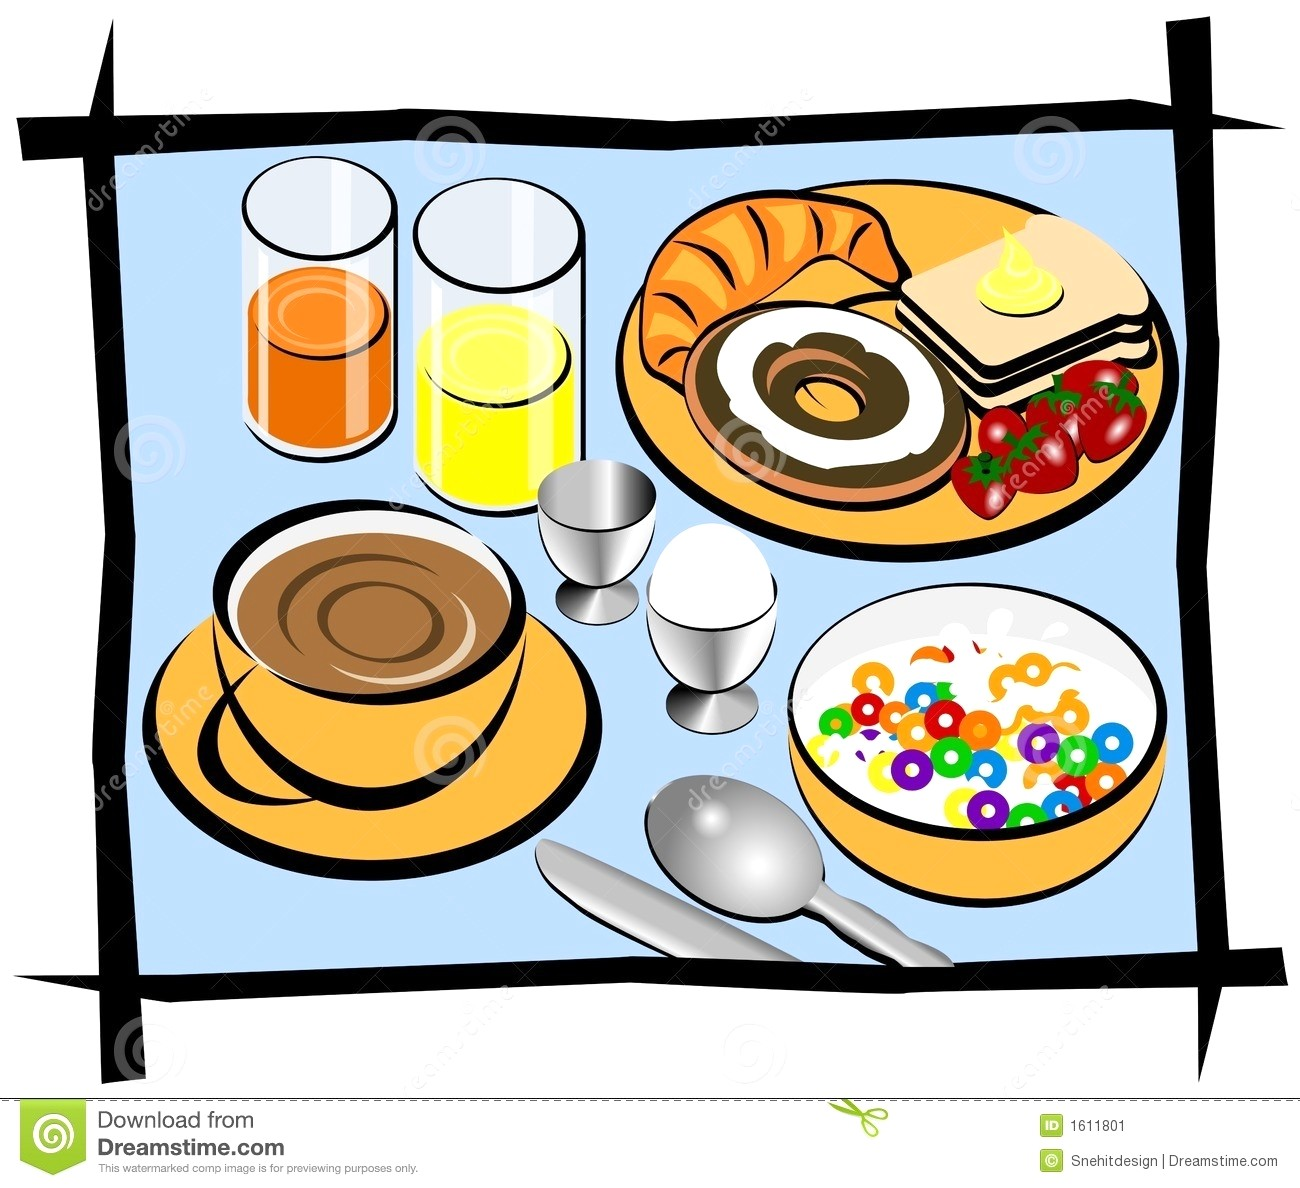 Brunch clipart saturday, Brunch saturday Transparent FREE.